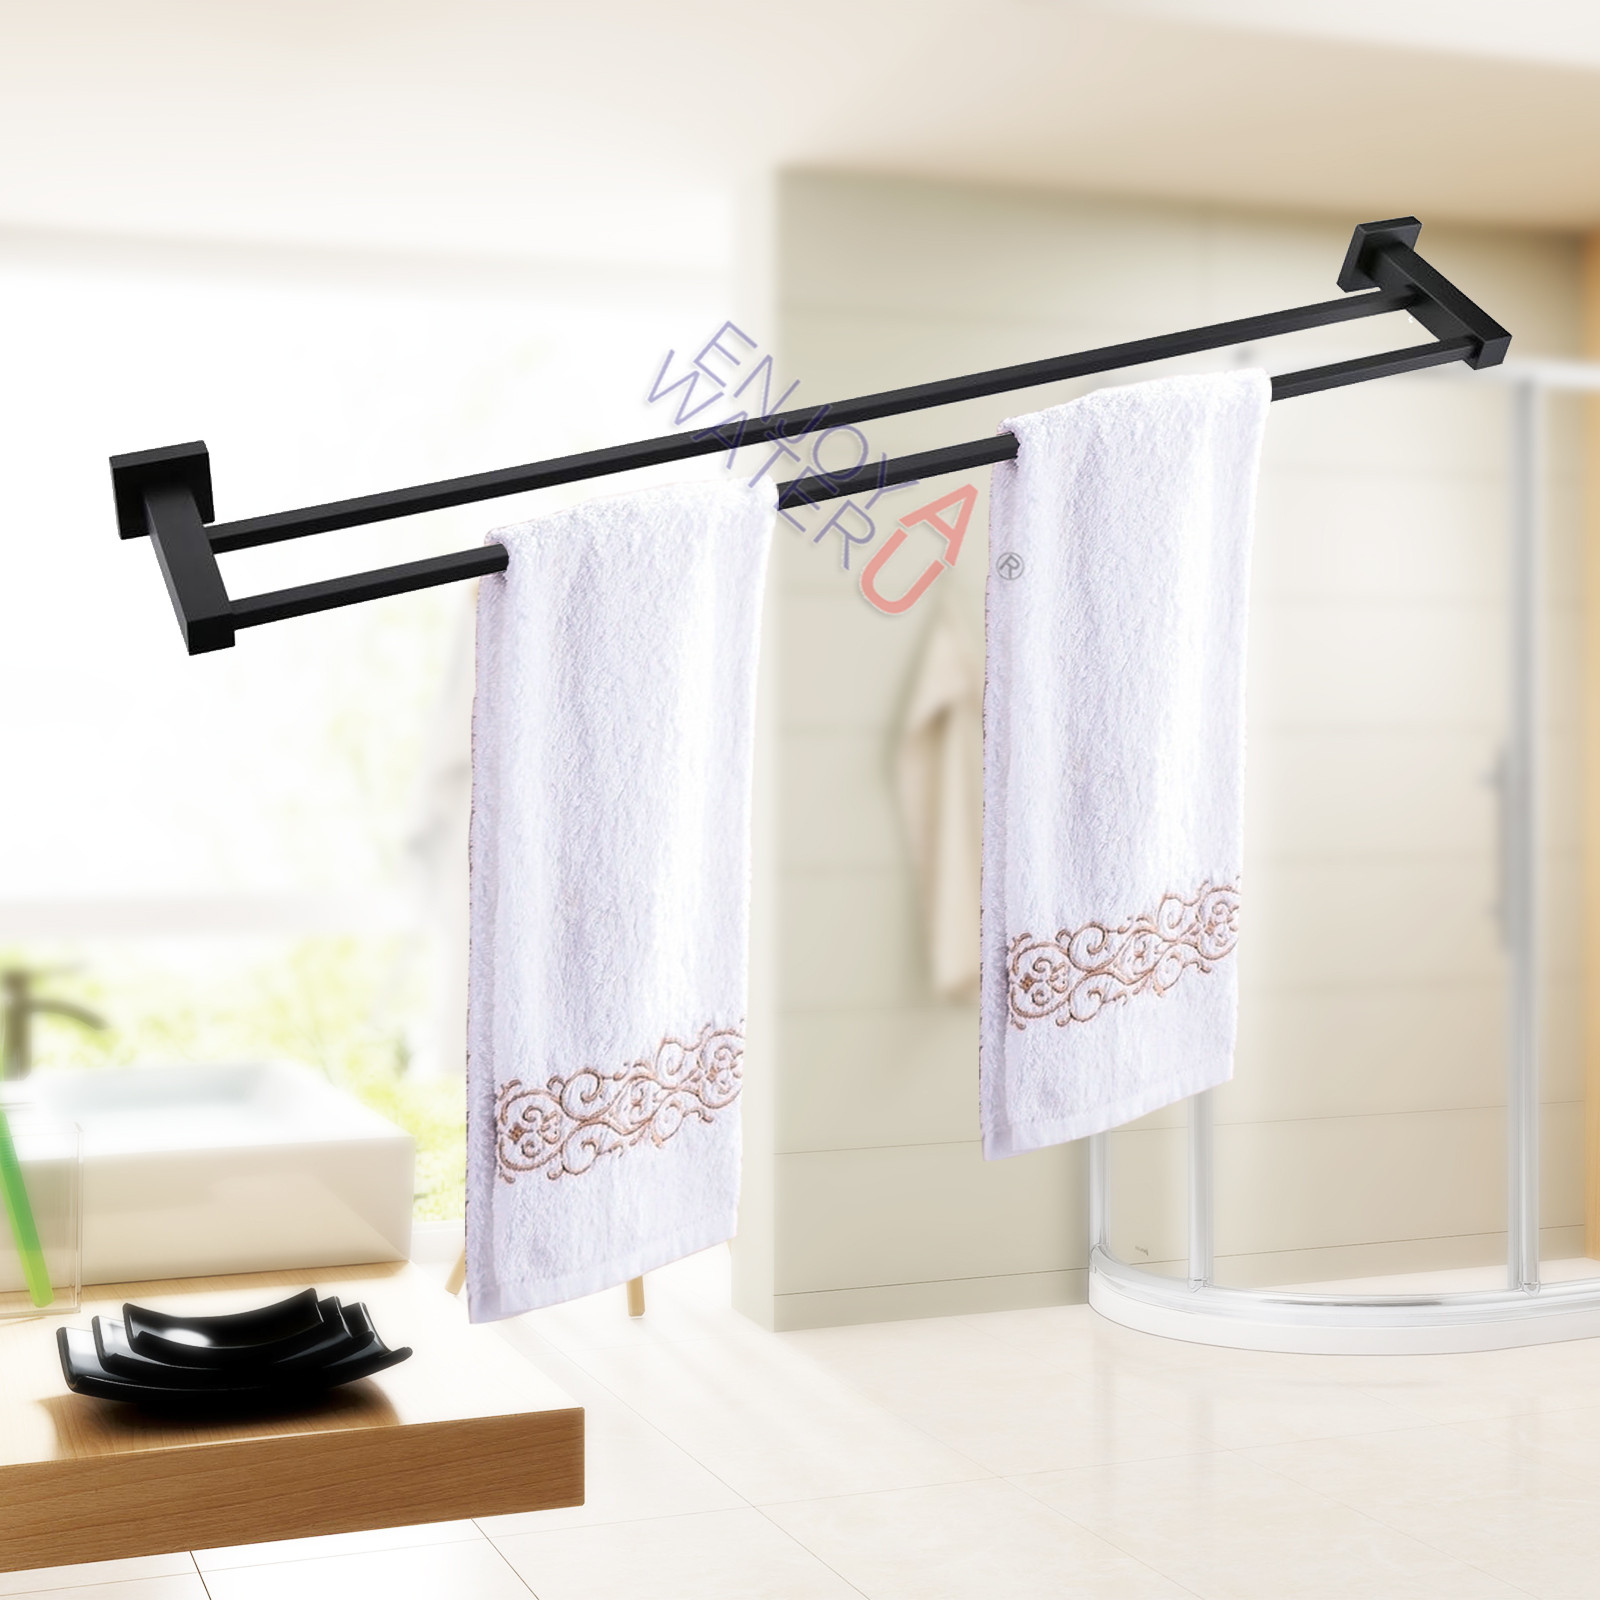 600mm double towel rail rack holder stainless steel 304 for Double towel rails for bathrooms